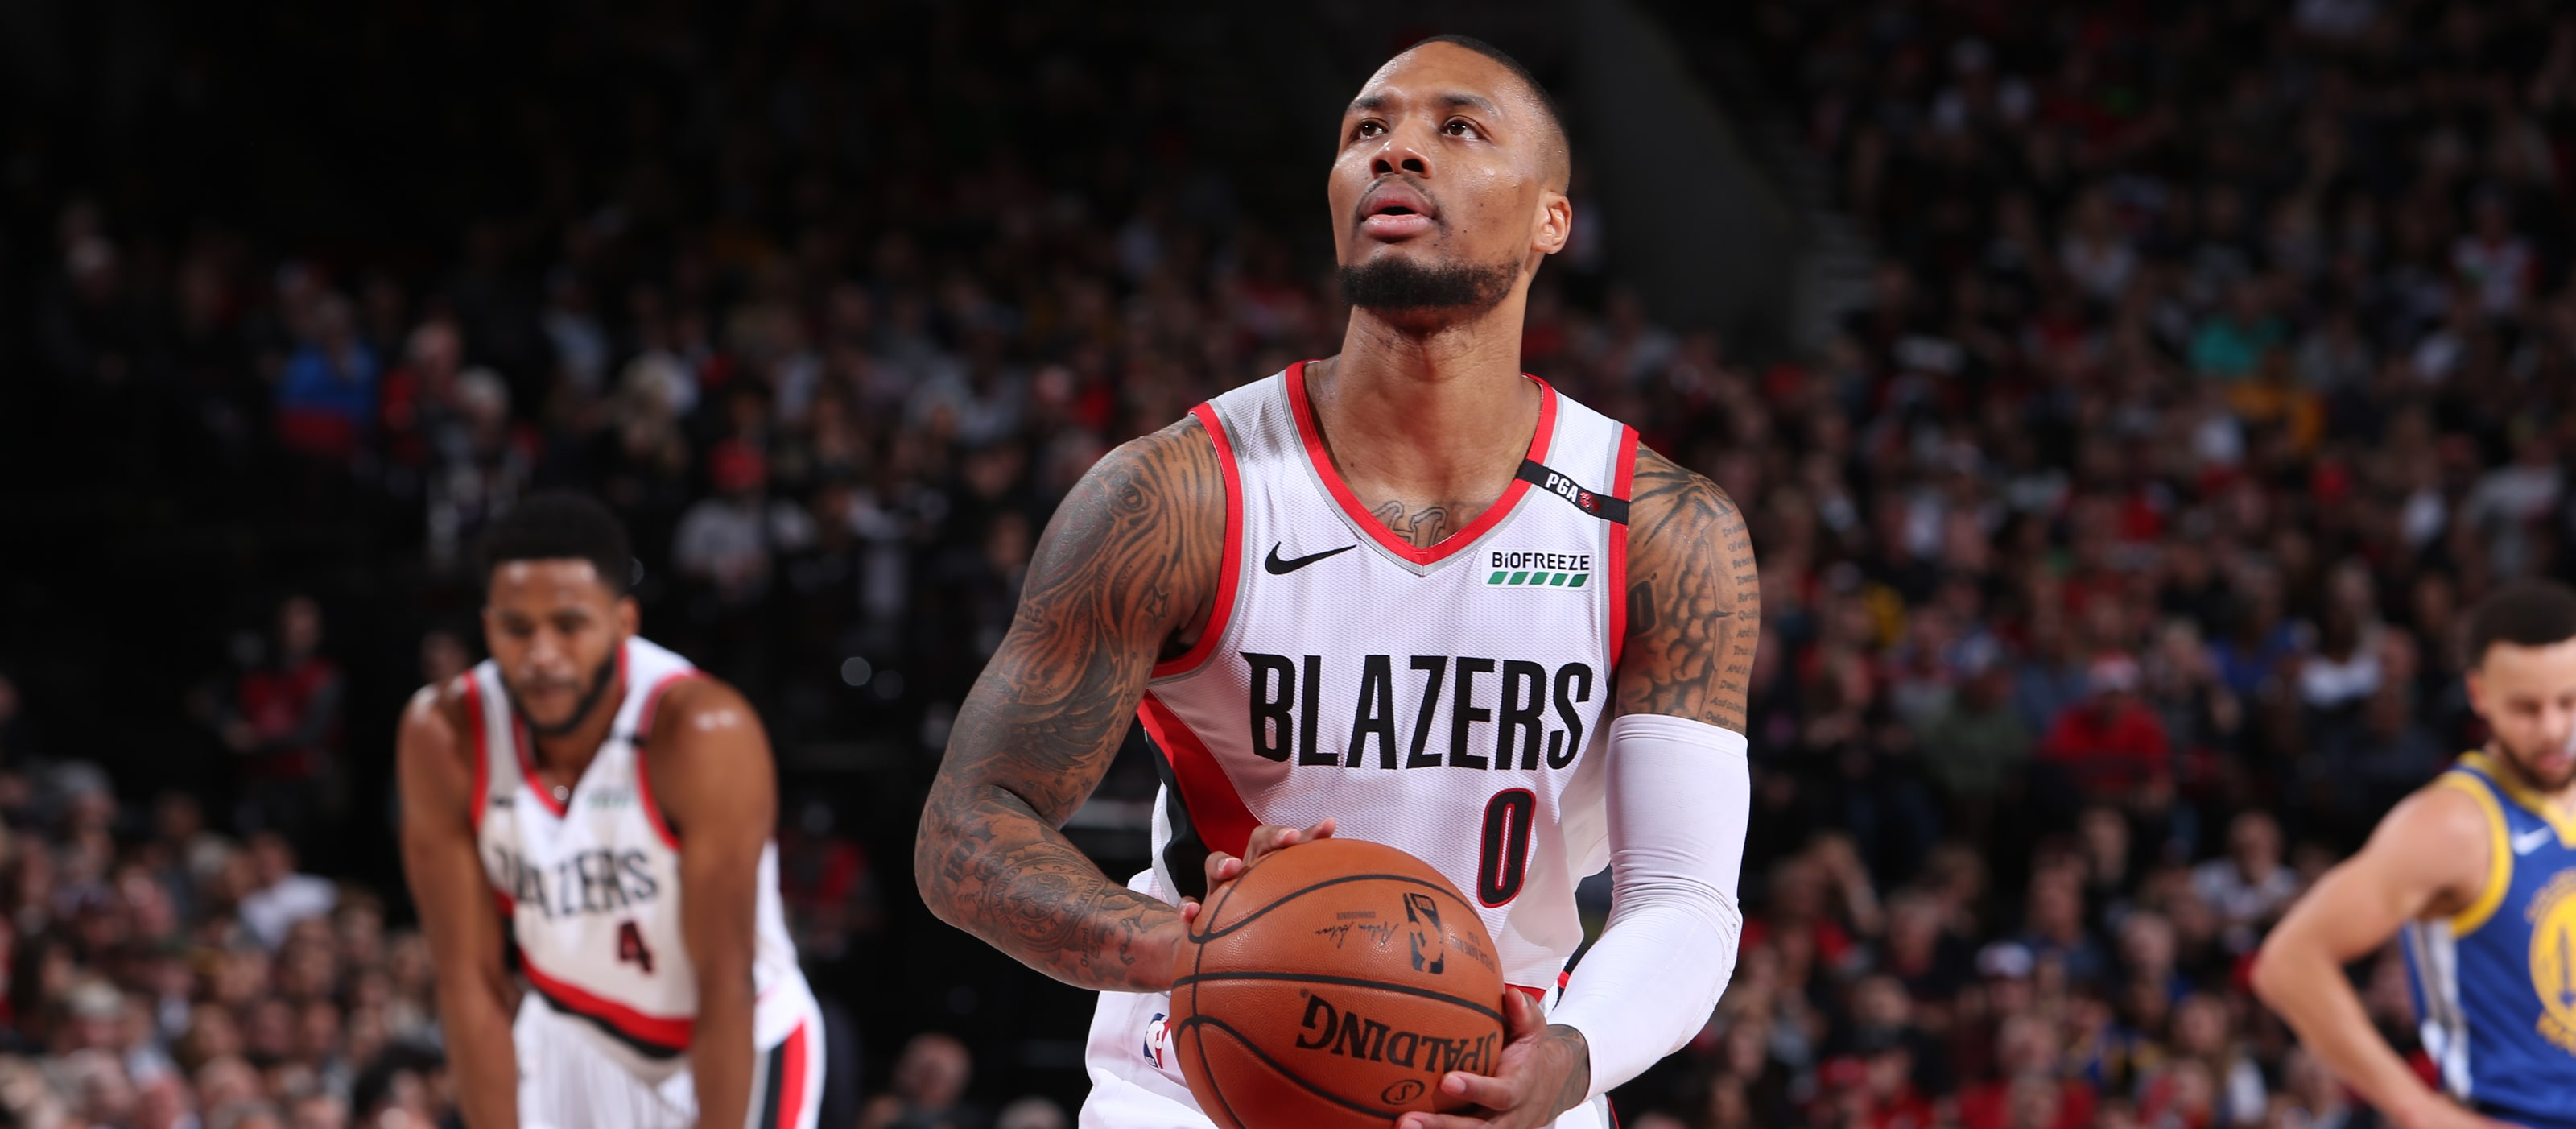 b14e1493e06 Despite Separated Ribs And A 3-0 Series Deficit, Lillard Insists He And Team  Have 'A Lot To Play For'